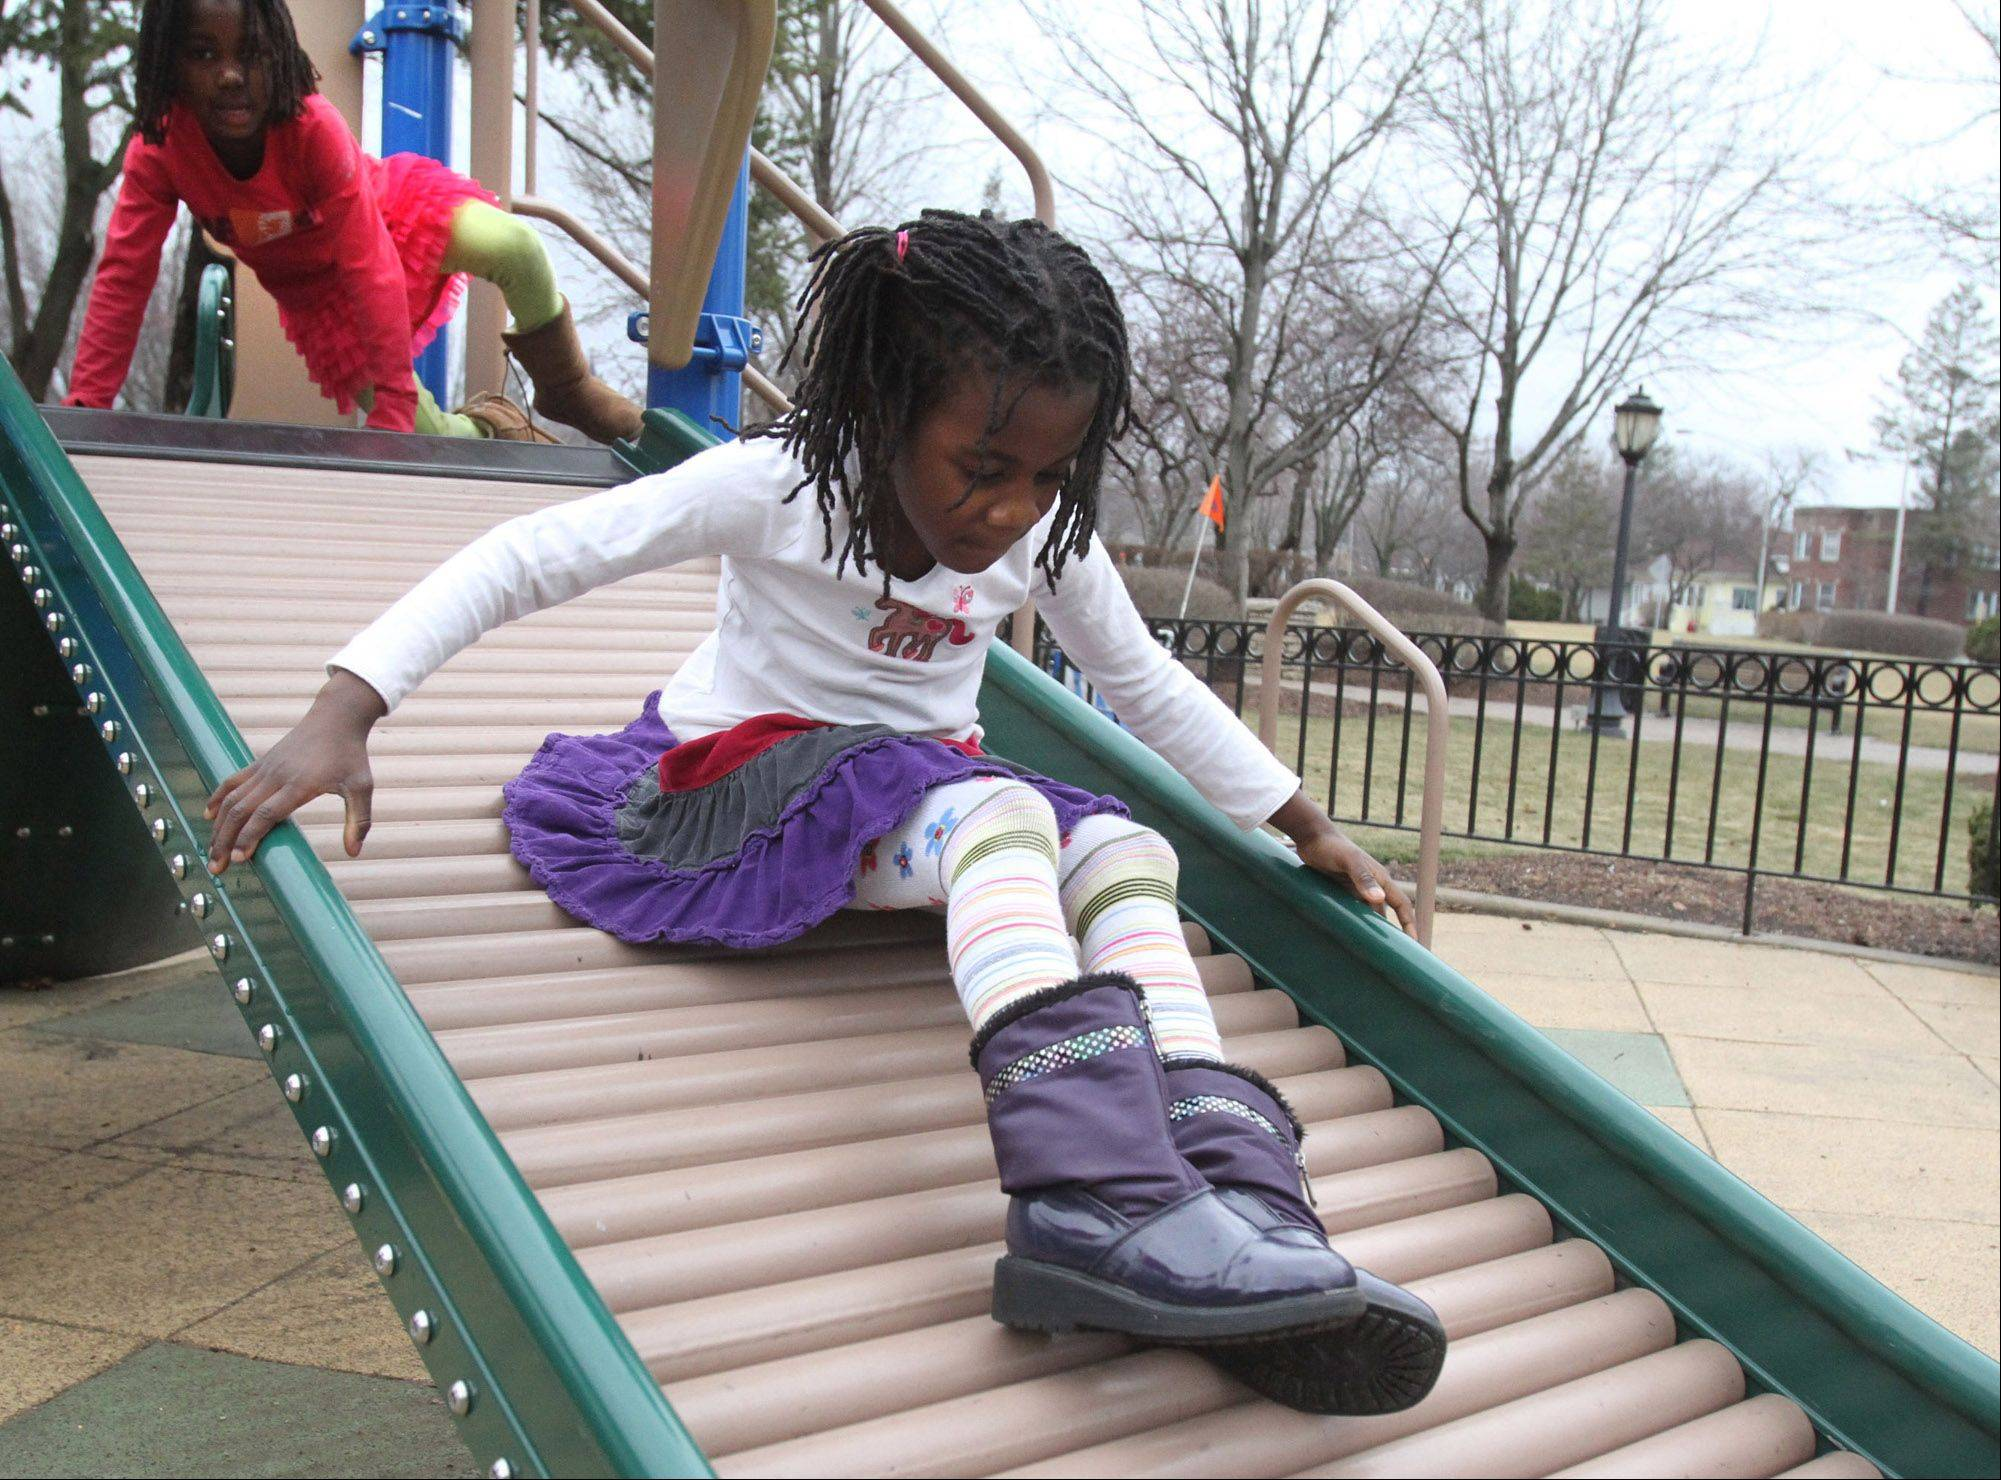 Kea Bucataru, 7, rides down the slide, with her sister Corrie, 5, both of Arlington Heights, trailing behind her at North School Park in Arlington Heights on Tuesday.